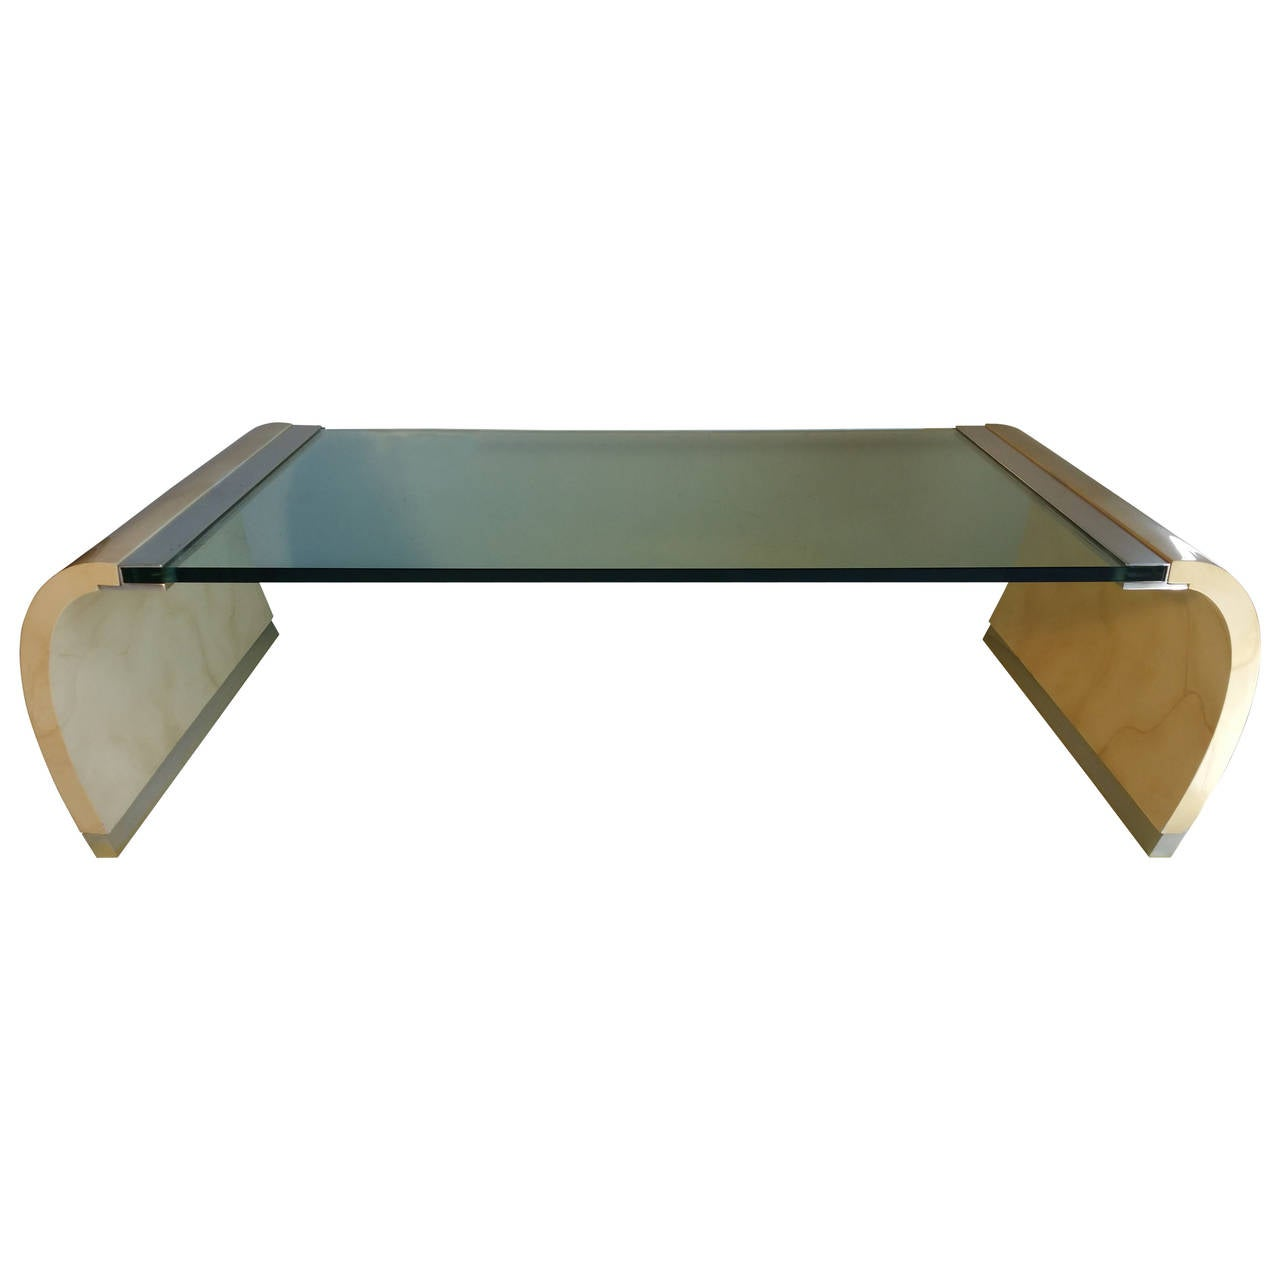 Glass Top Coffee Table From Karl Andersson: Glass And Lacquer Waterfall Coffee Table In The Manner Of